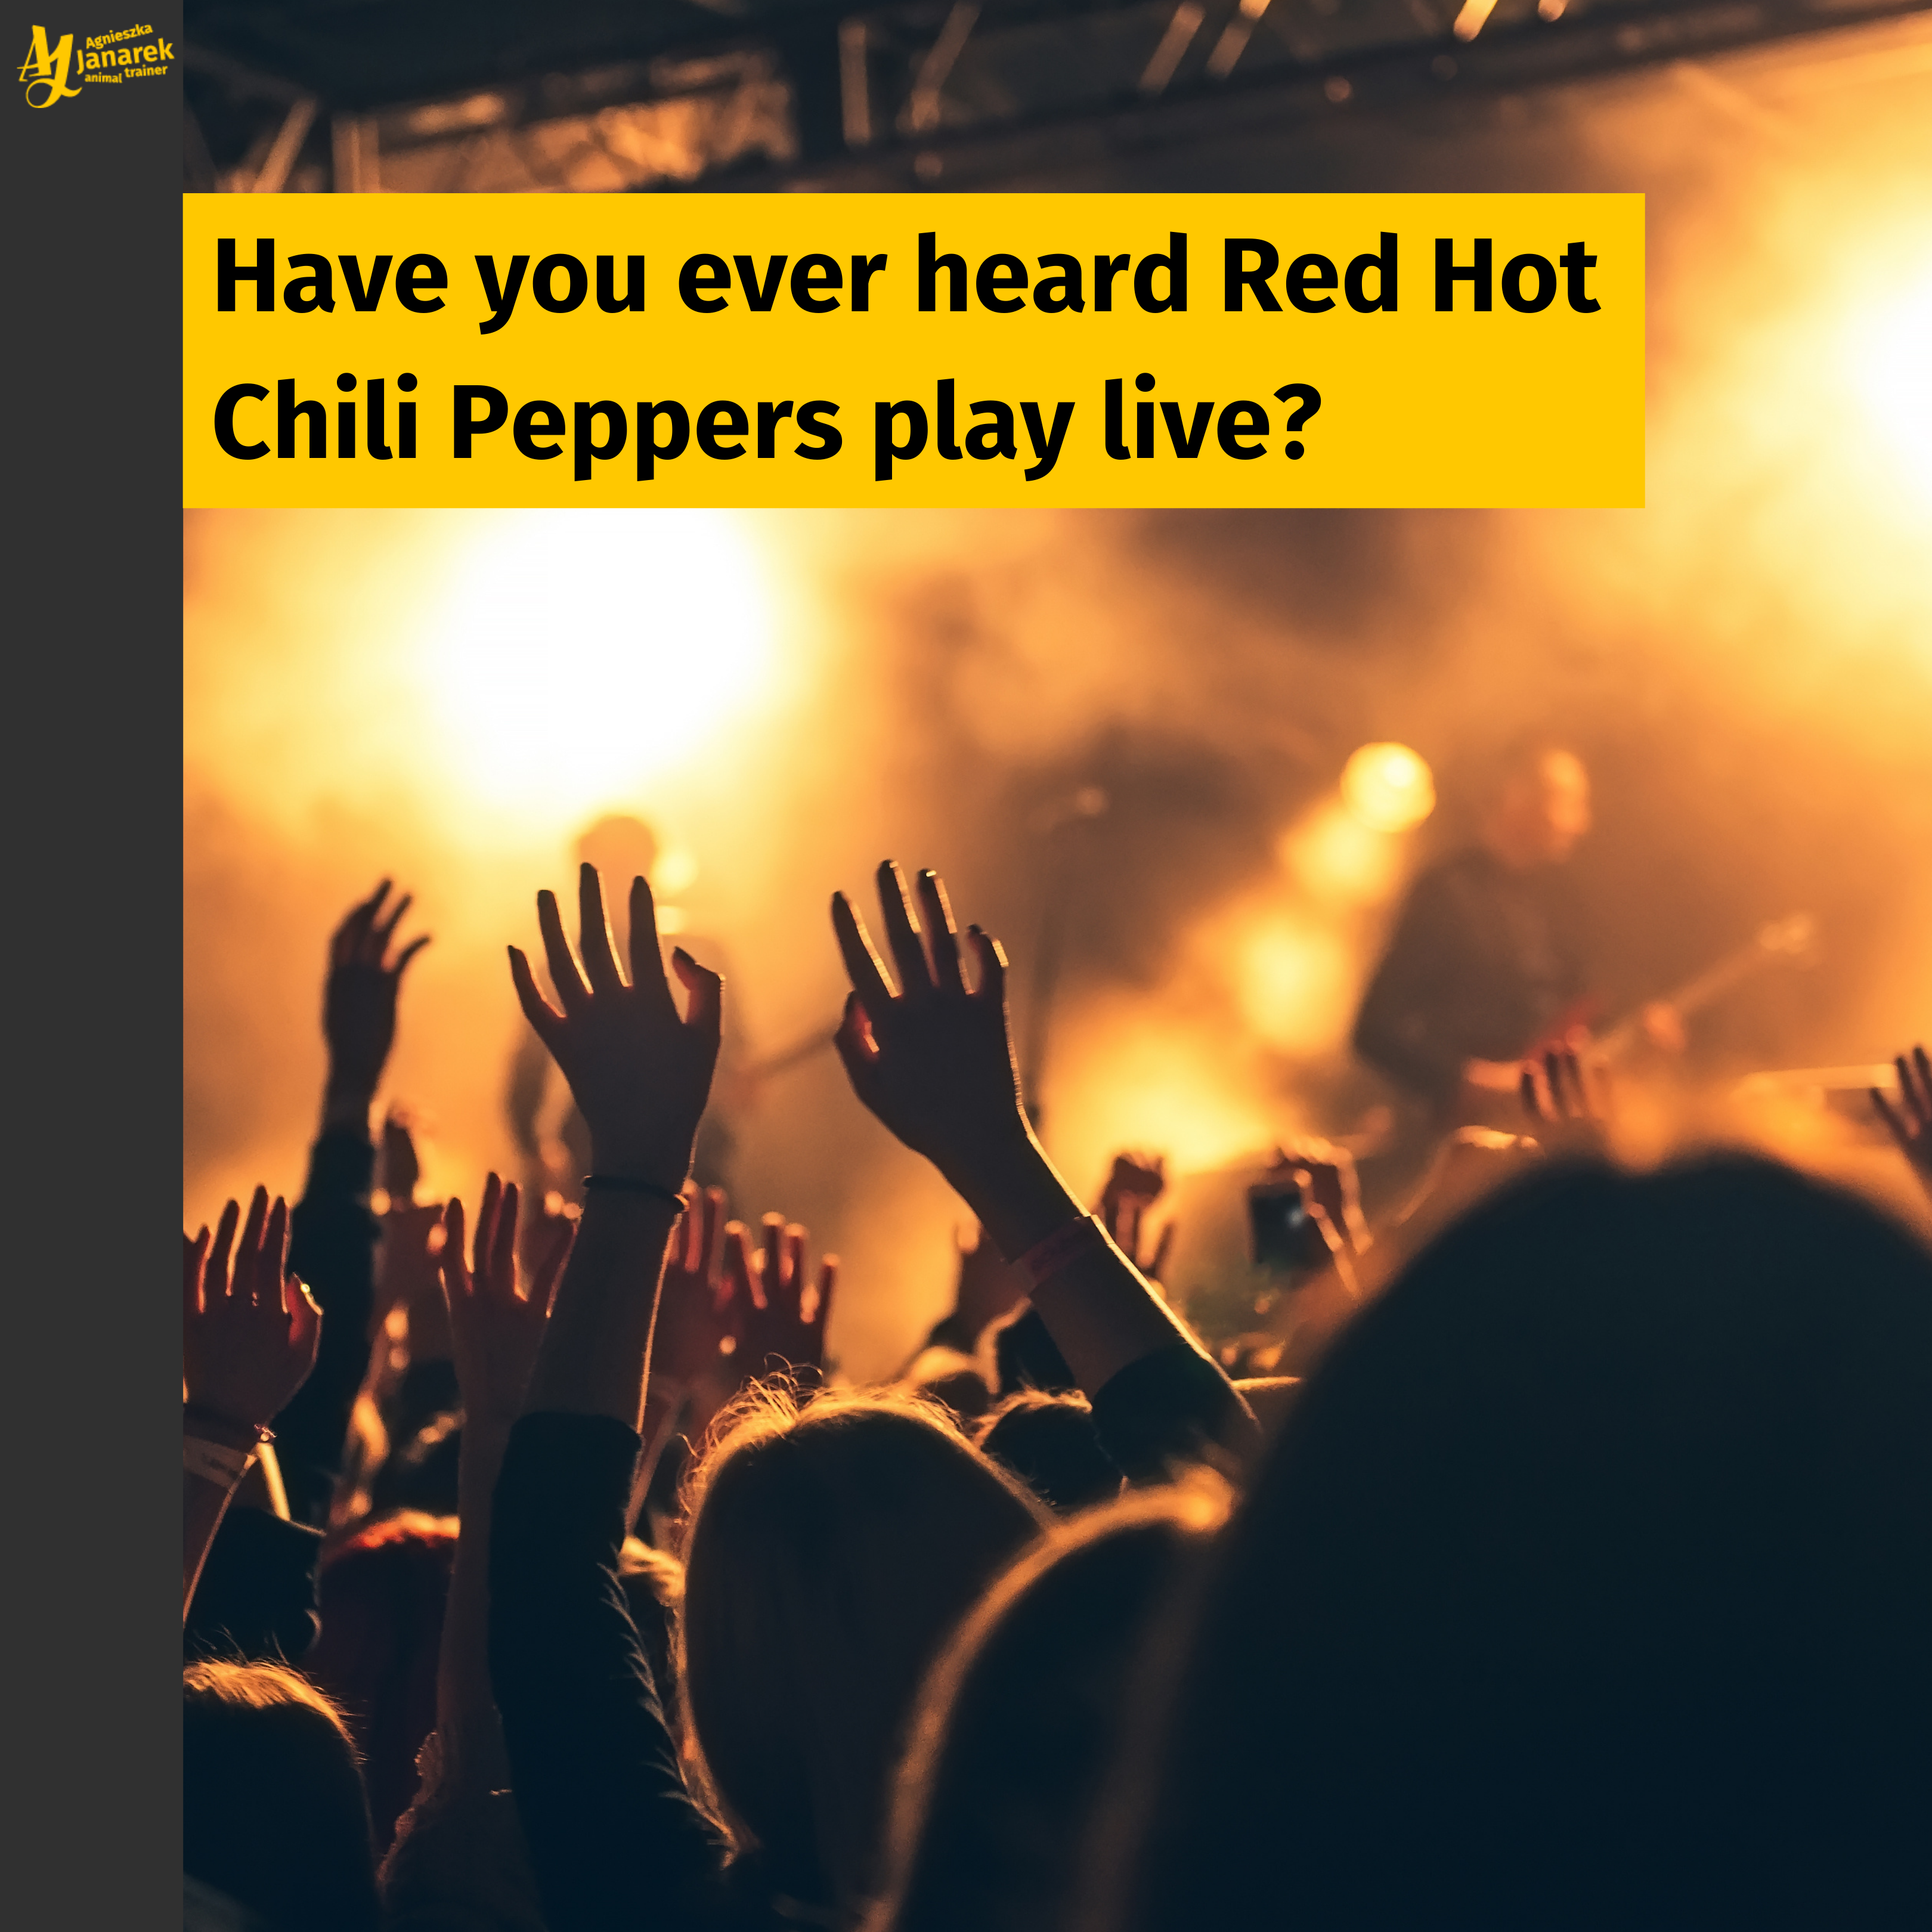 Have You Ever Heard Red Hot Chili Peppers Play Live?